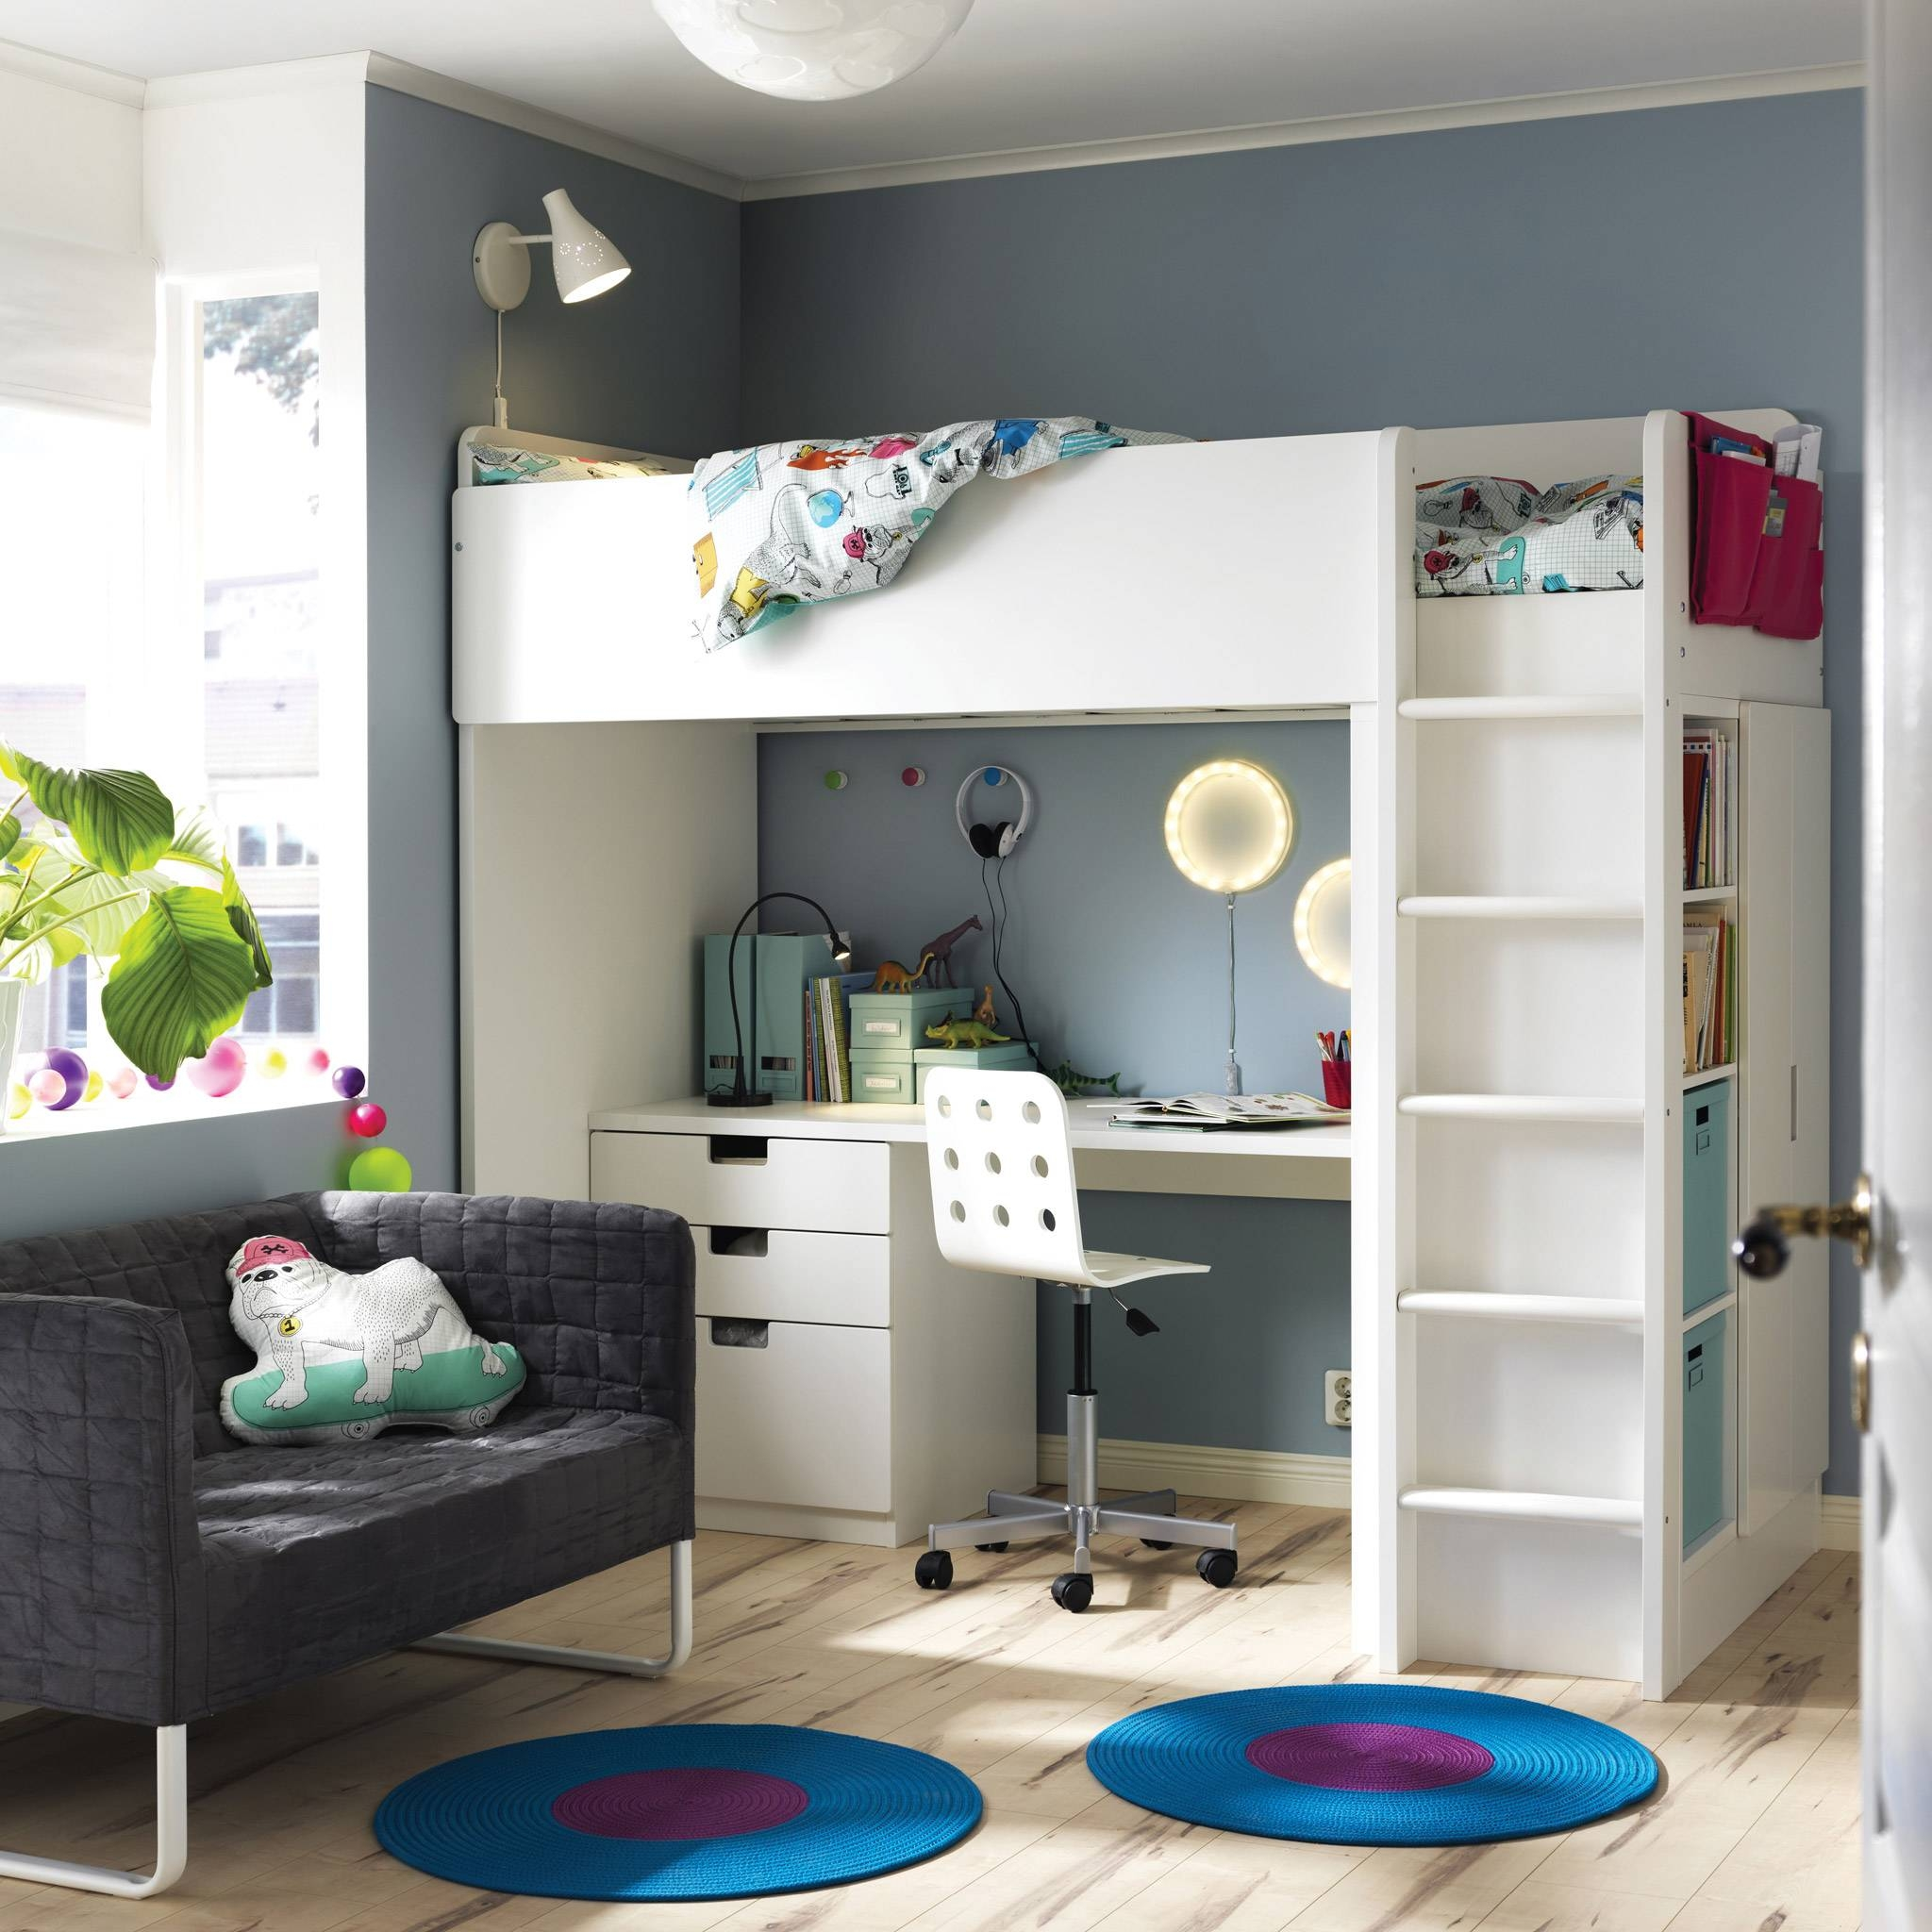 Children's Furniture & Ideas | Ikea regarding Bed and Wardrobes Combination (Image 9 of 15)